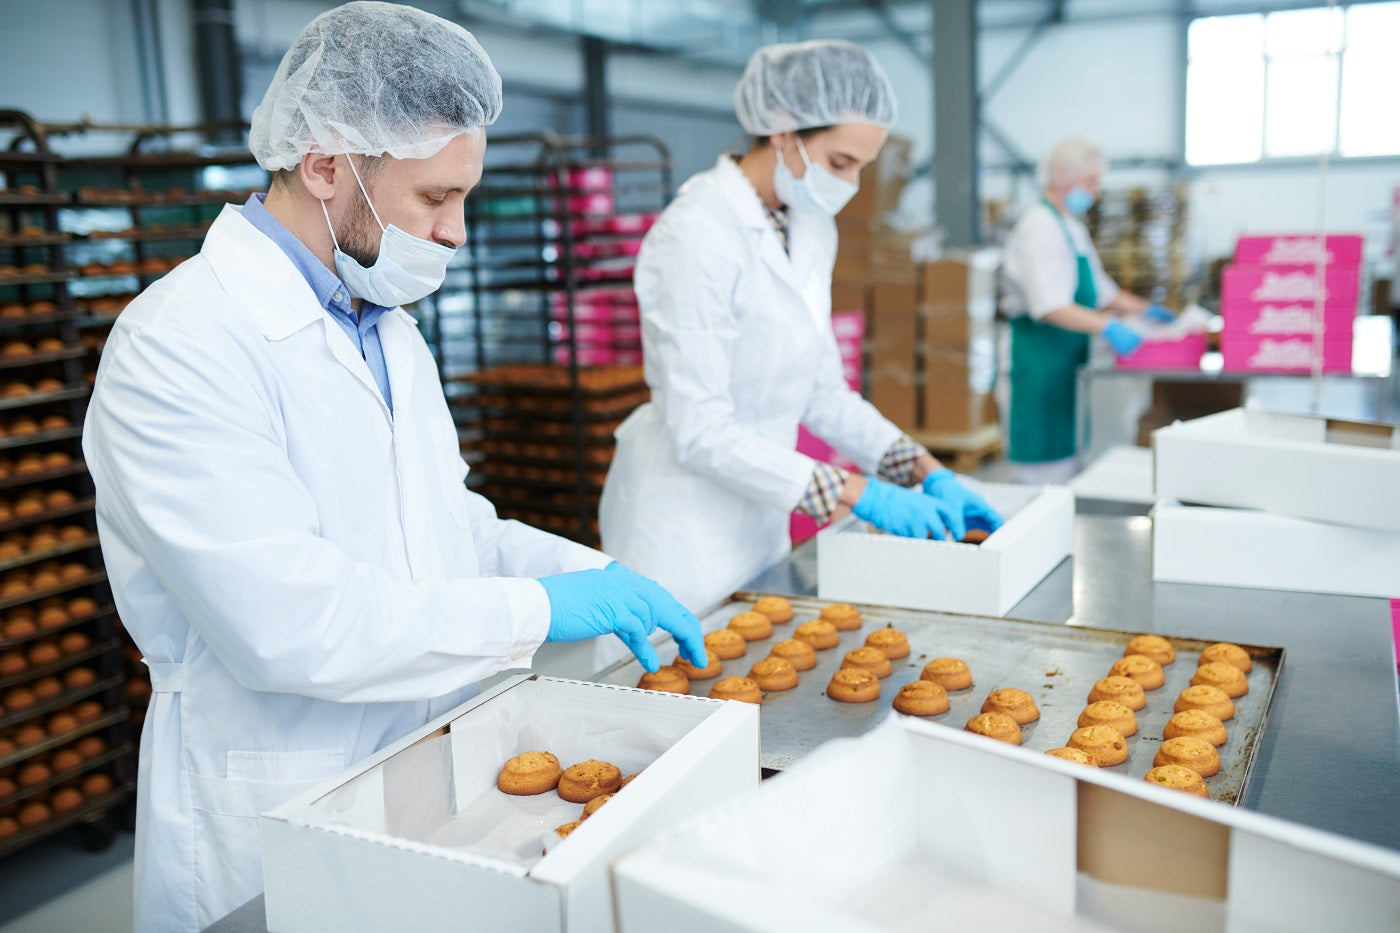 NEOS Food Services Overshoes Are Ideal Footwear For Working In Food Industry